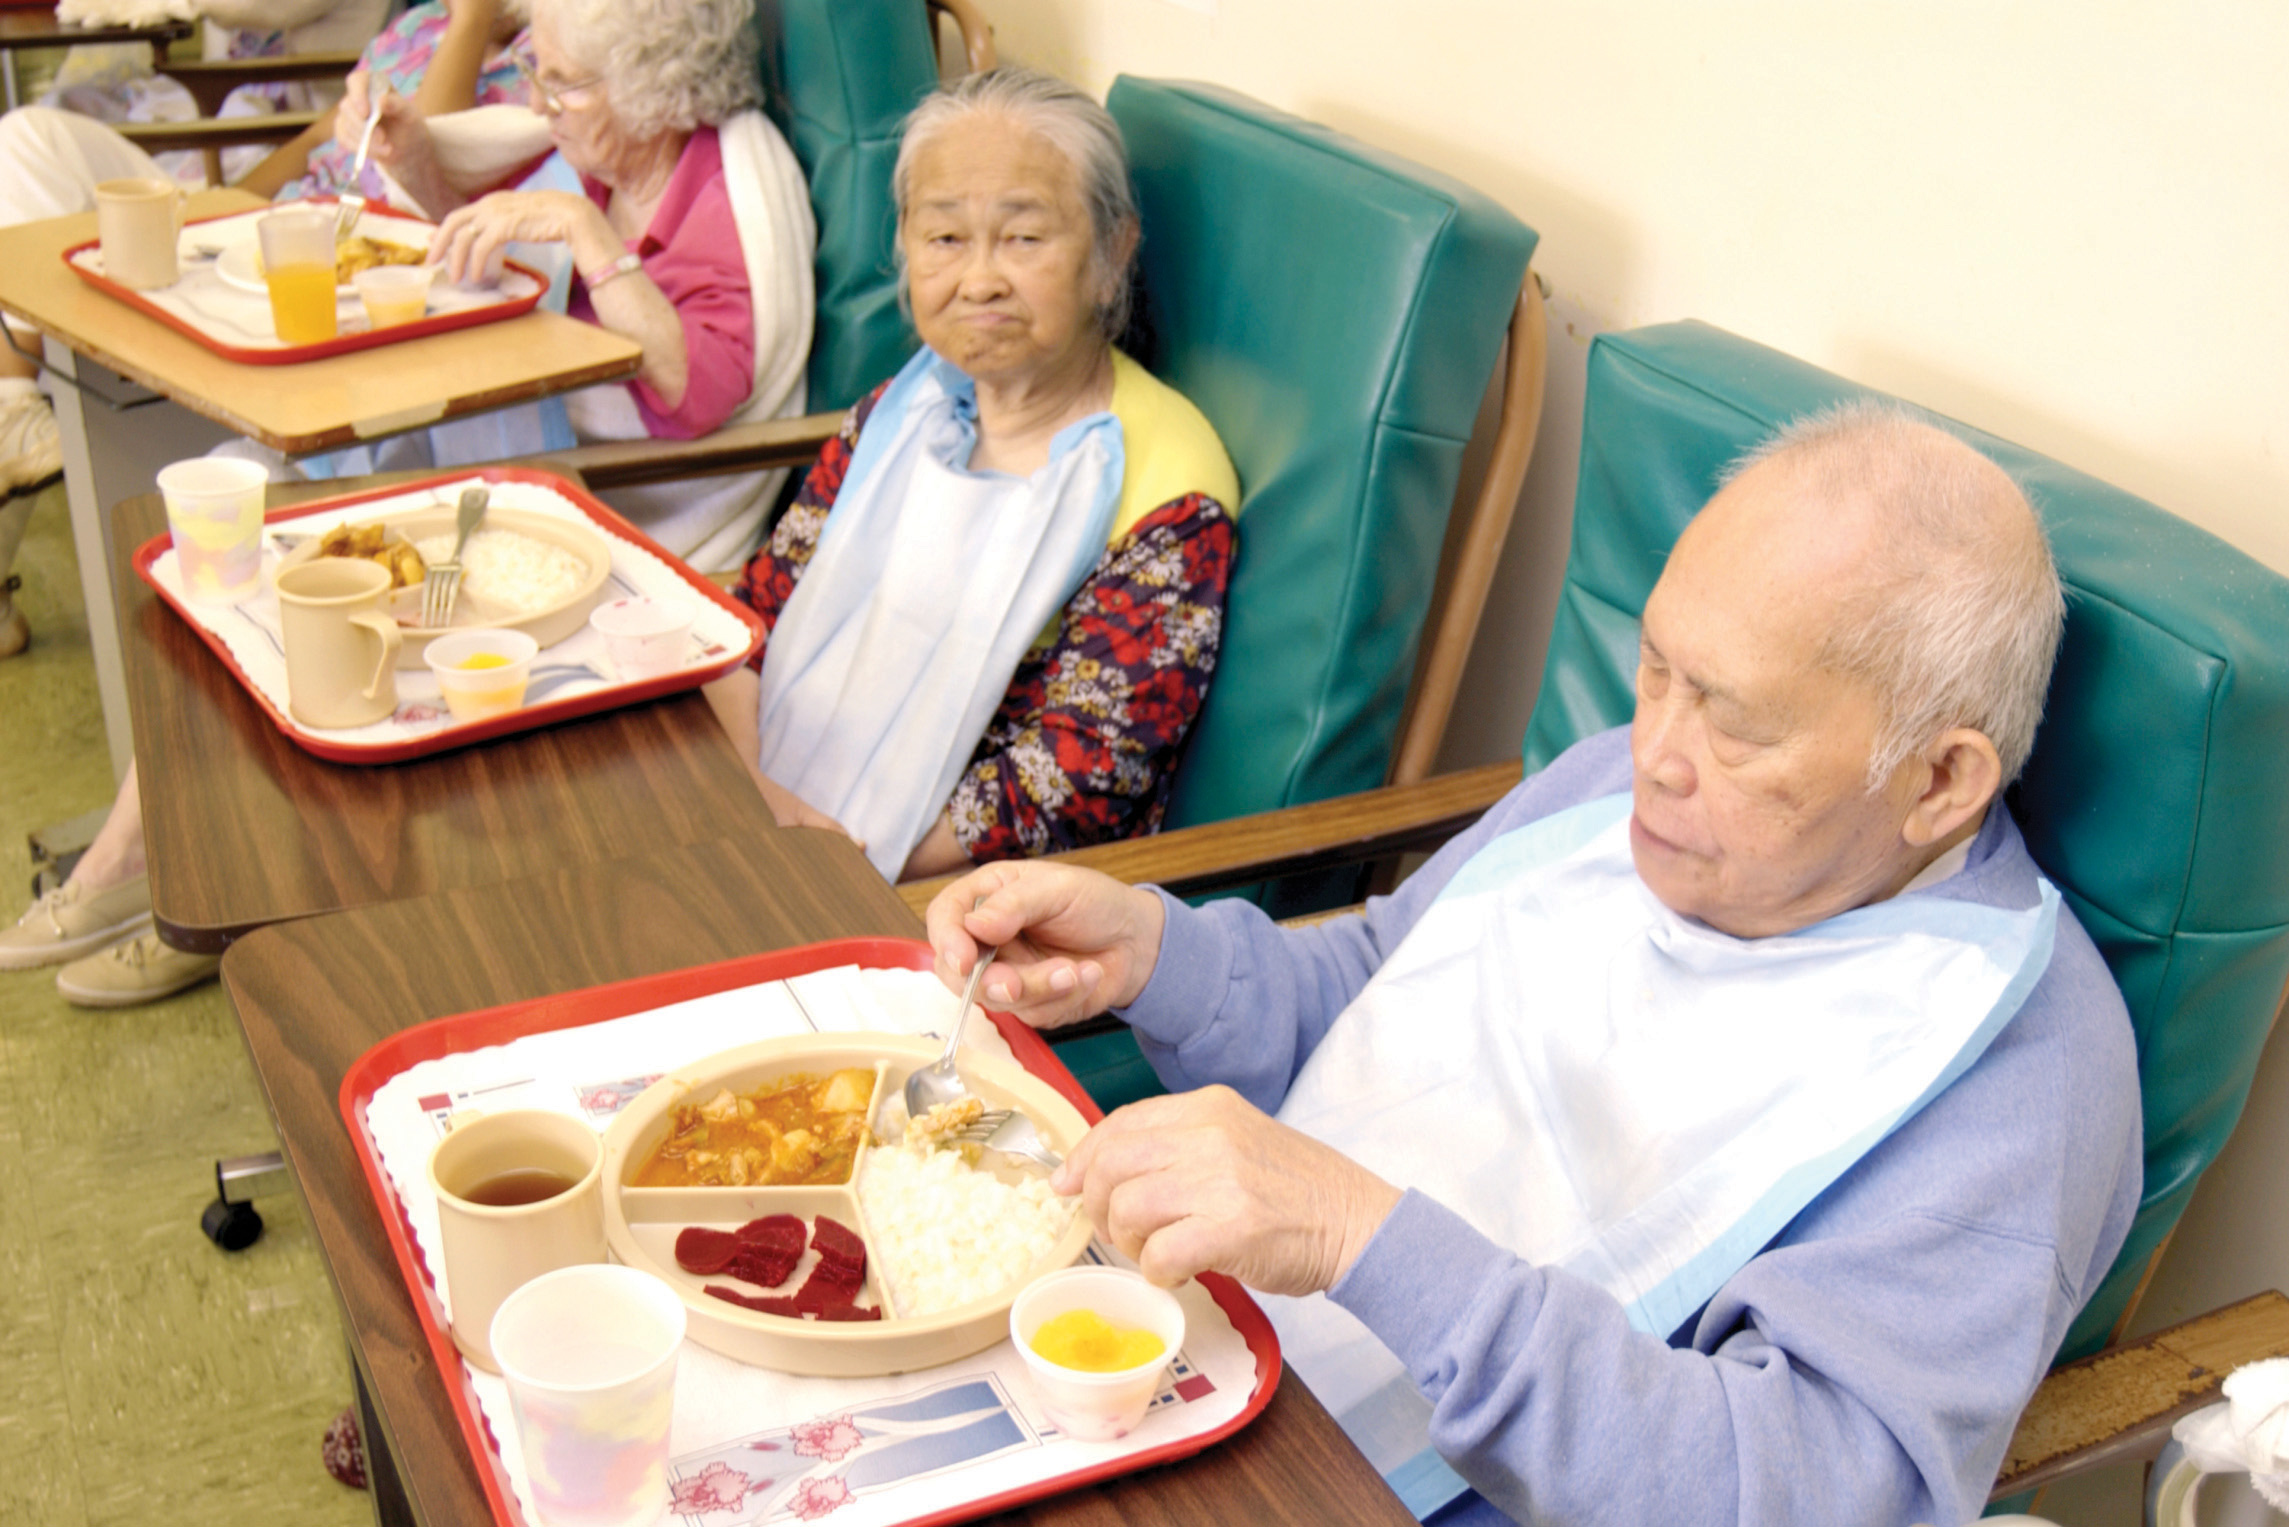 Elderly Care Homes In China